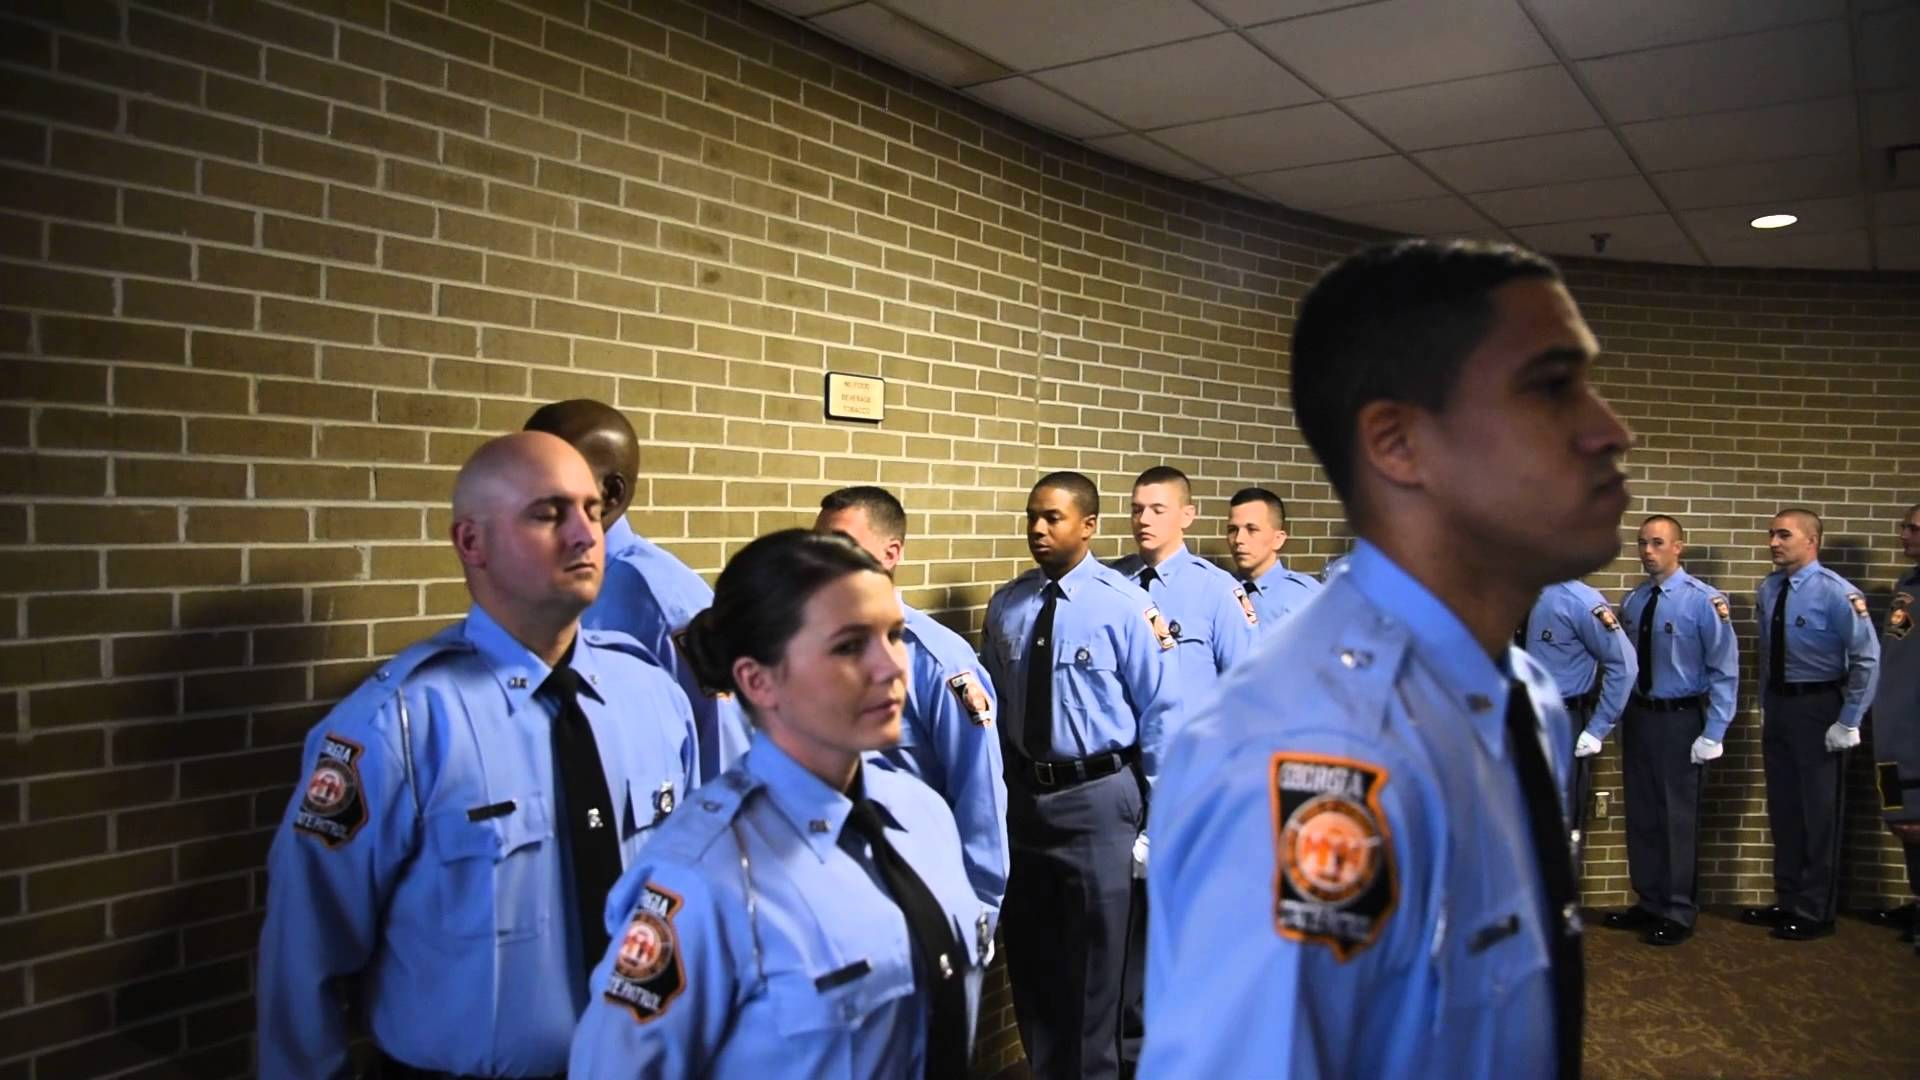 Few Cadets Make It Through Georgia Trooper School